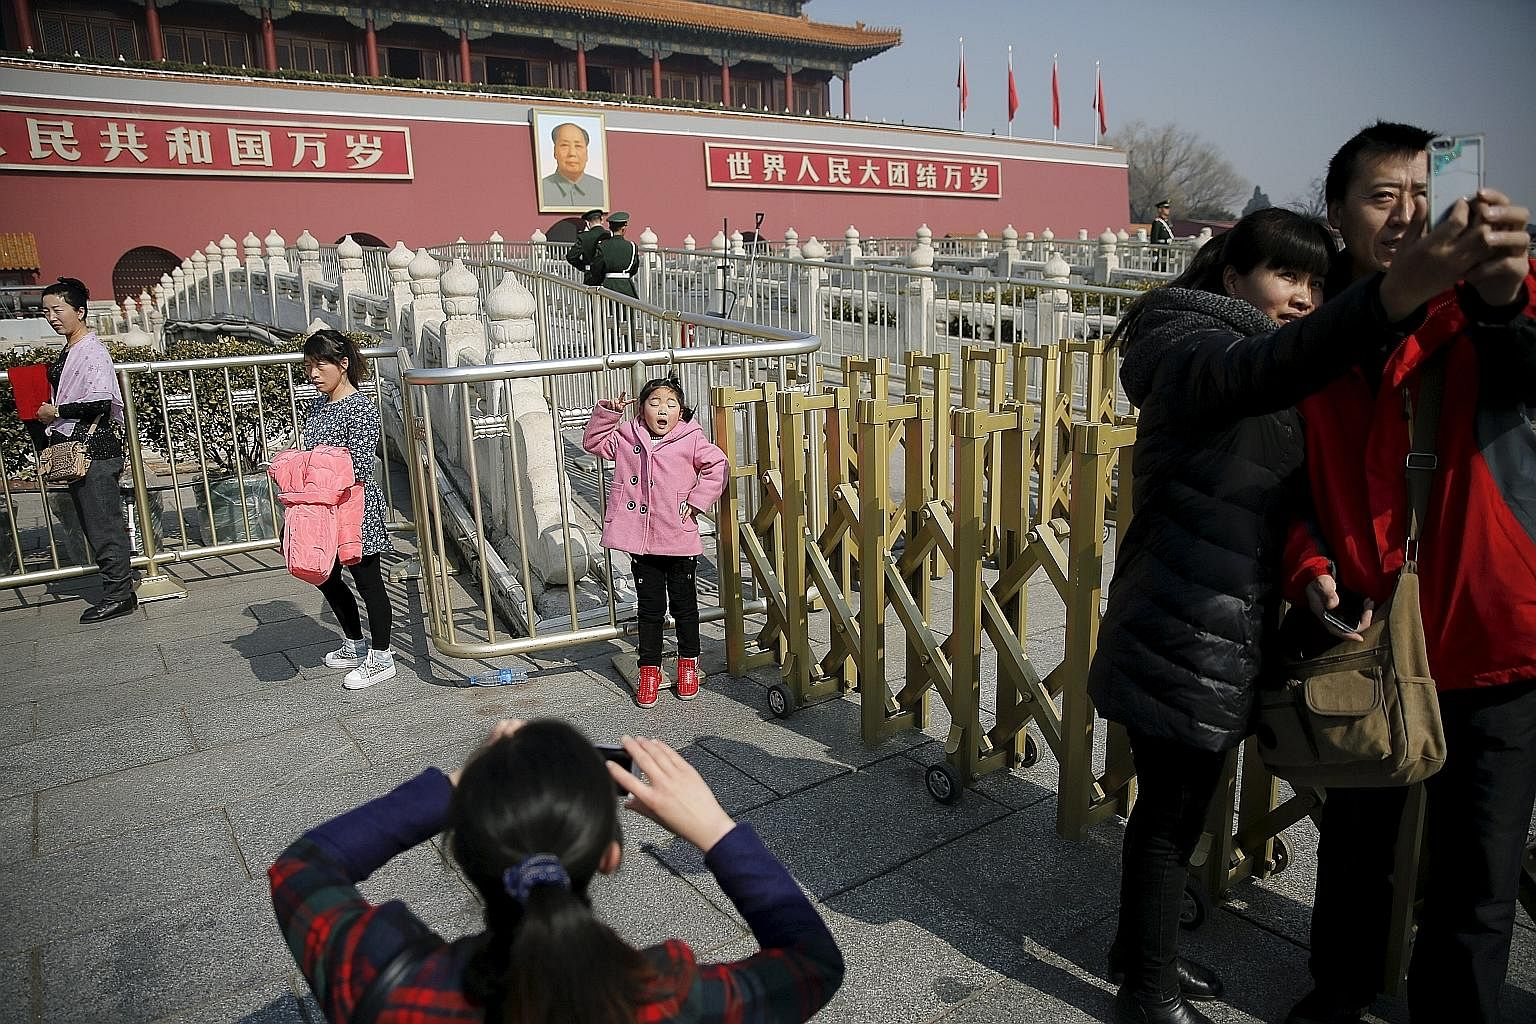 Picture-perfect moments in front of Tiananmen Gate near the Great Hall of the People. The writer has found the Chinese to be creative individuals, surviving - even thriving - in a world of censorship by developing a sense of humour. They are, in thei